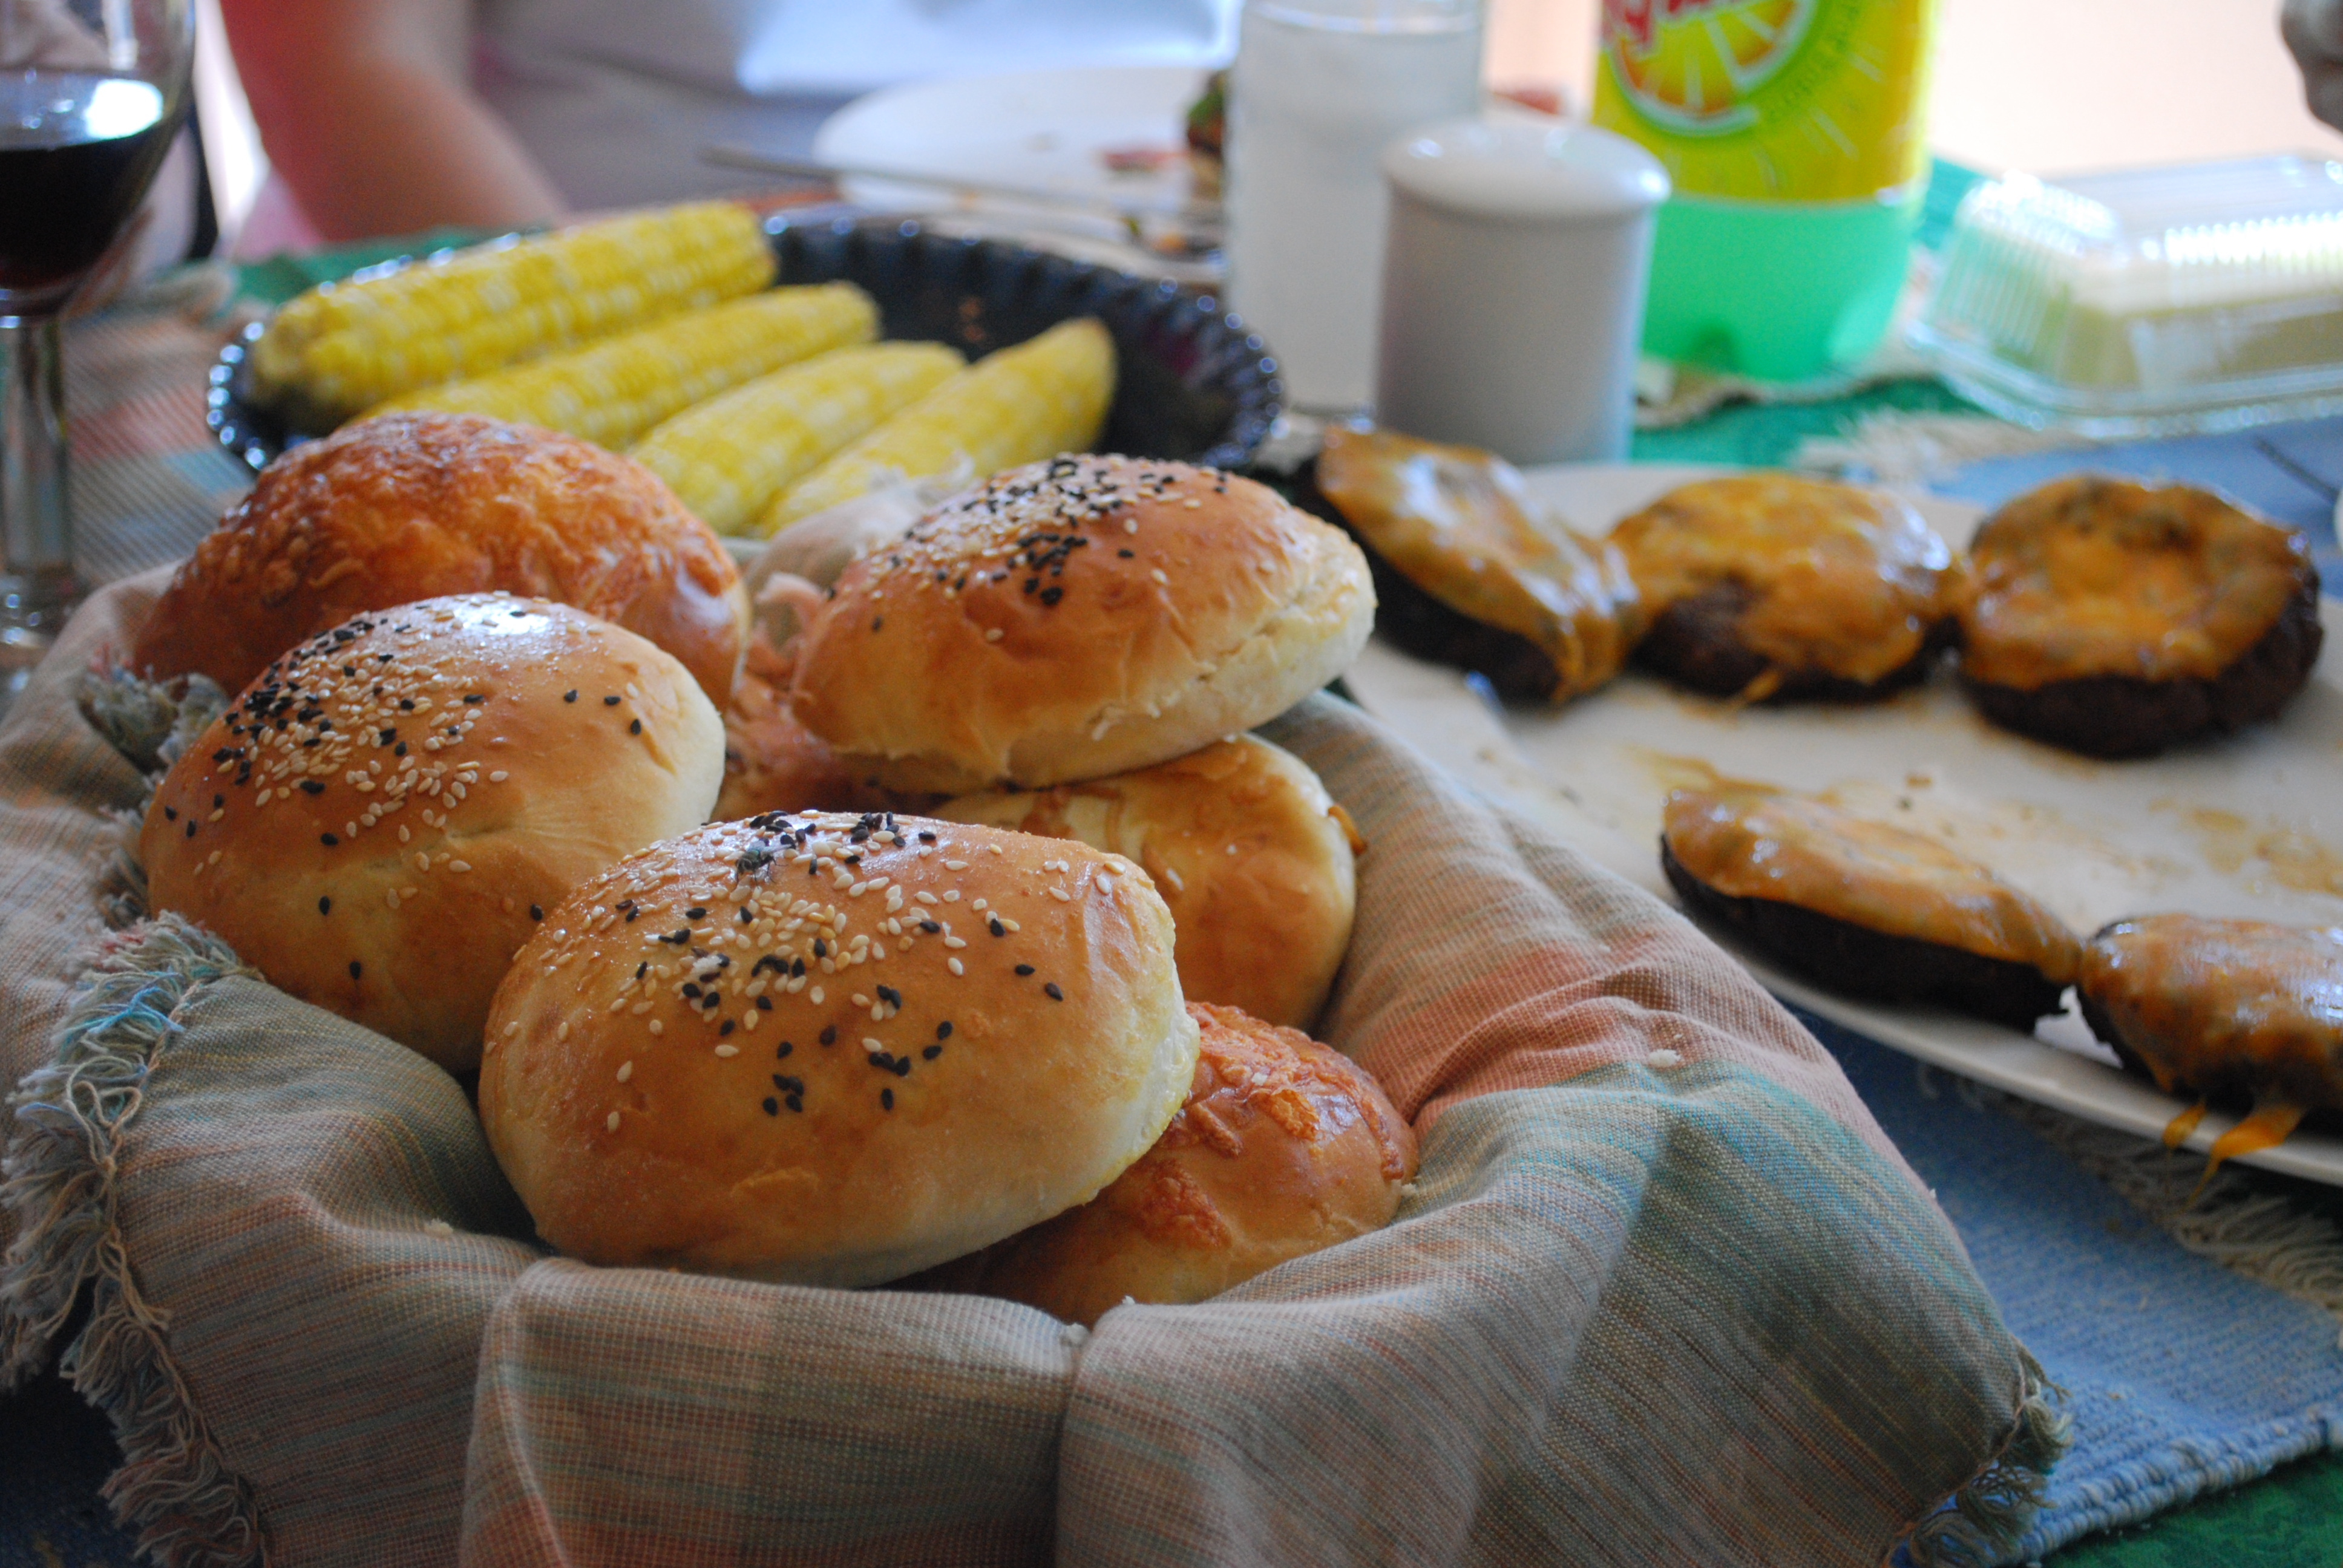 The 40 minute hamburger buns lasted about 30 minutes!